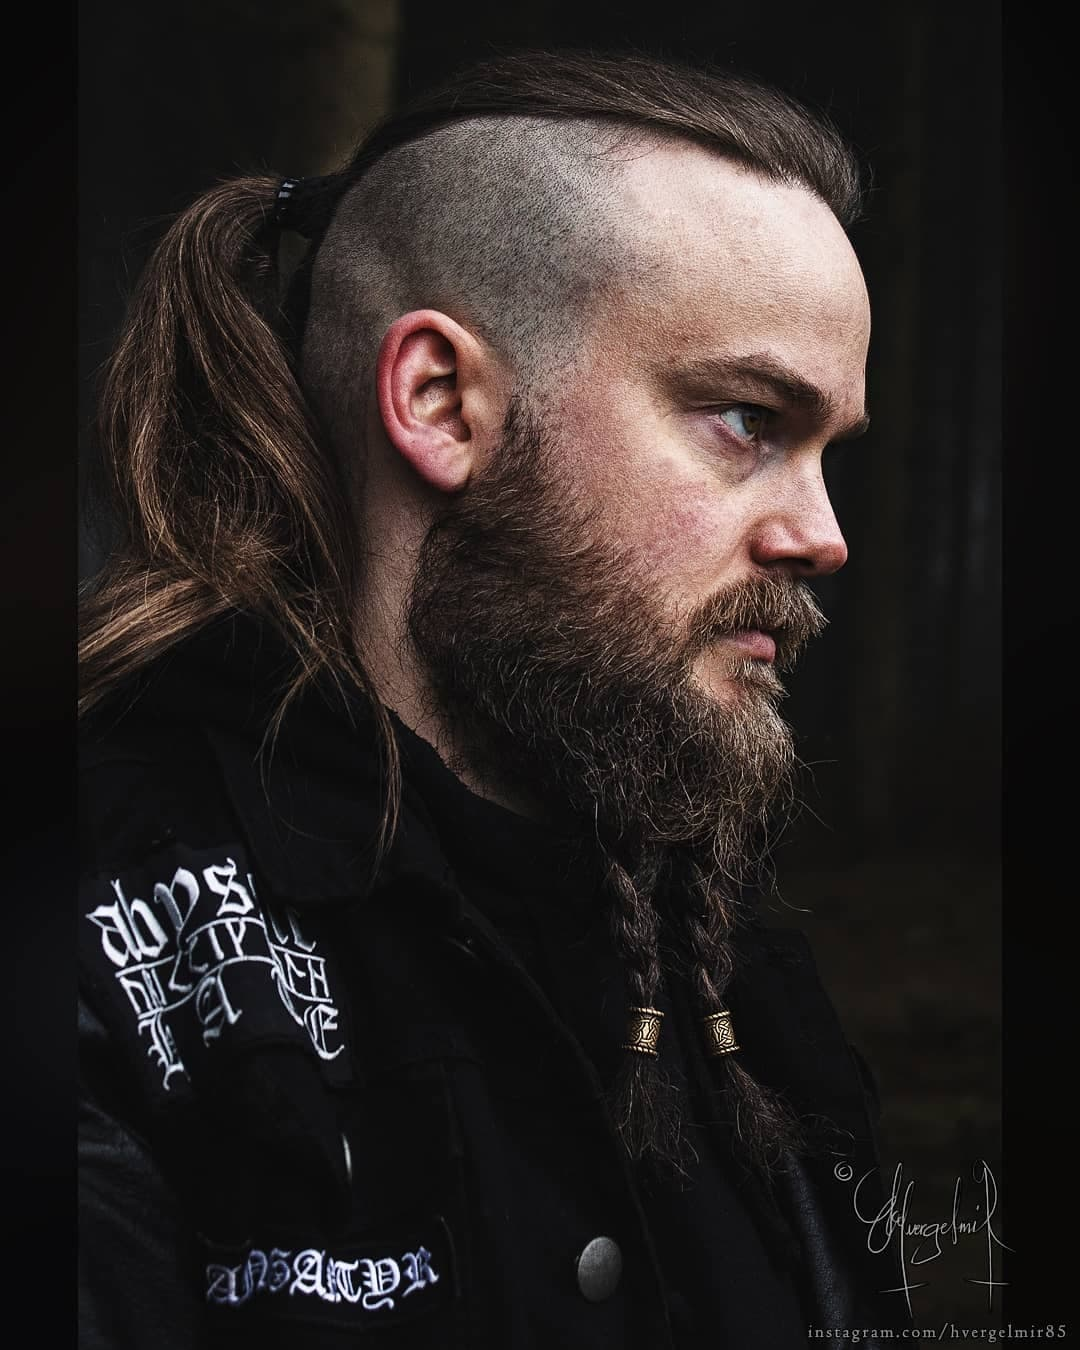 Man with disconnected undercut haircut with long hair styled into a ponytail and beard